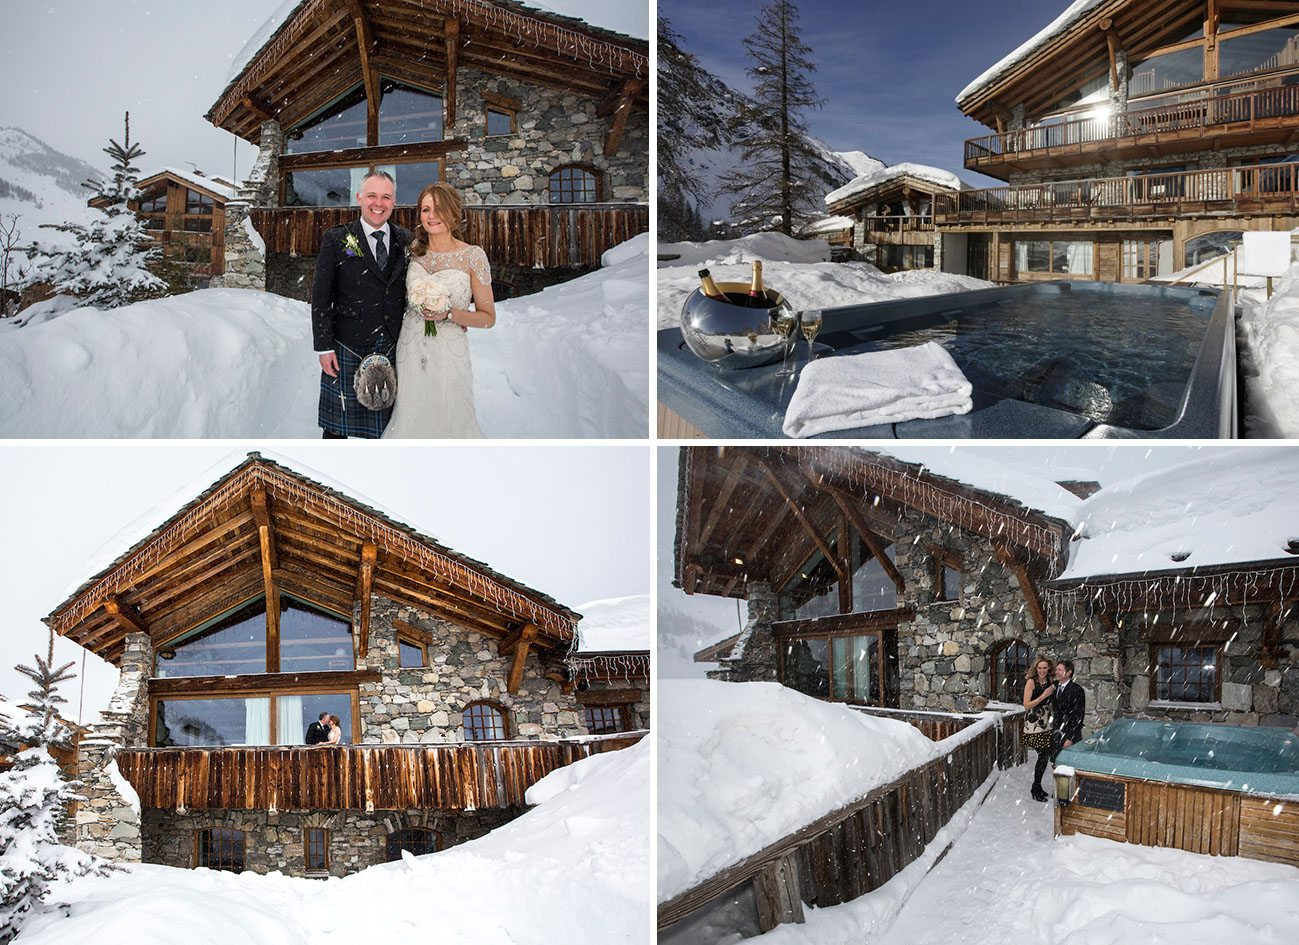 Ultimate Chalet weddings